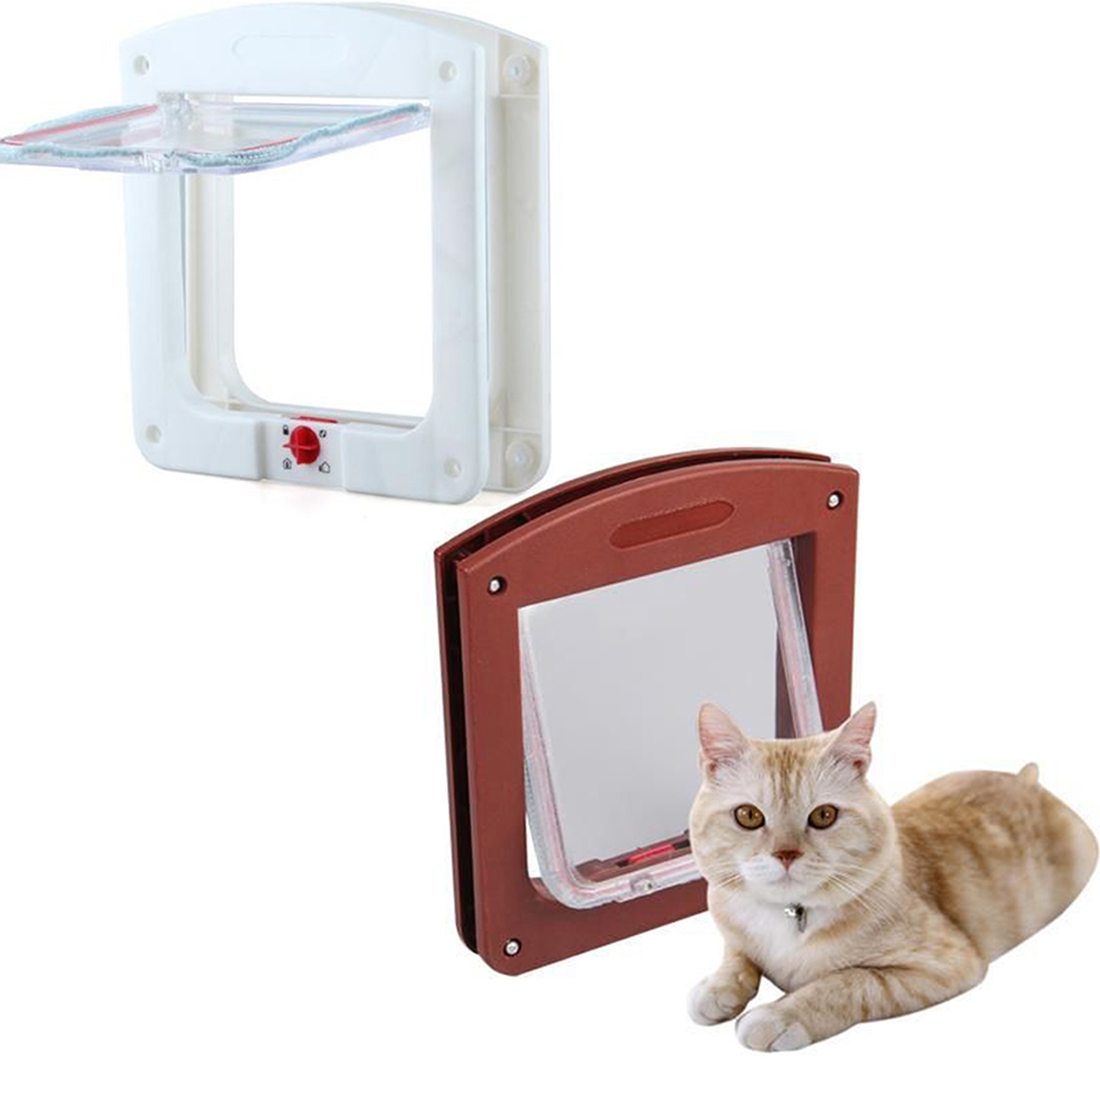 2016 Newest Durable Plastic 4 Way Cat Dog Small Waterproof Pet Locking Door Flap fast delivery(China (Mainland))